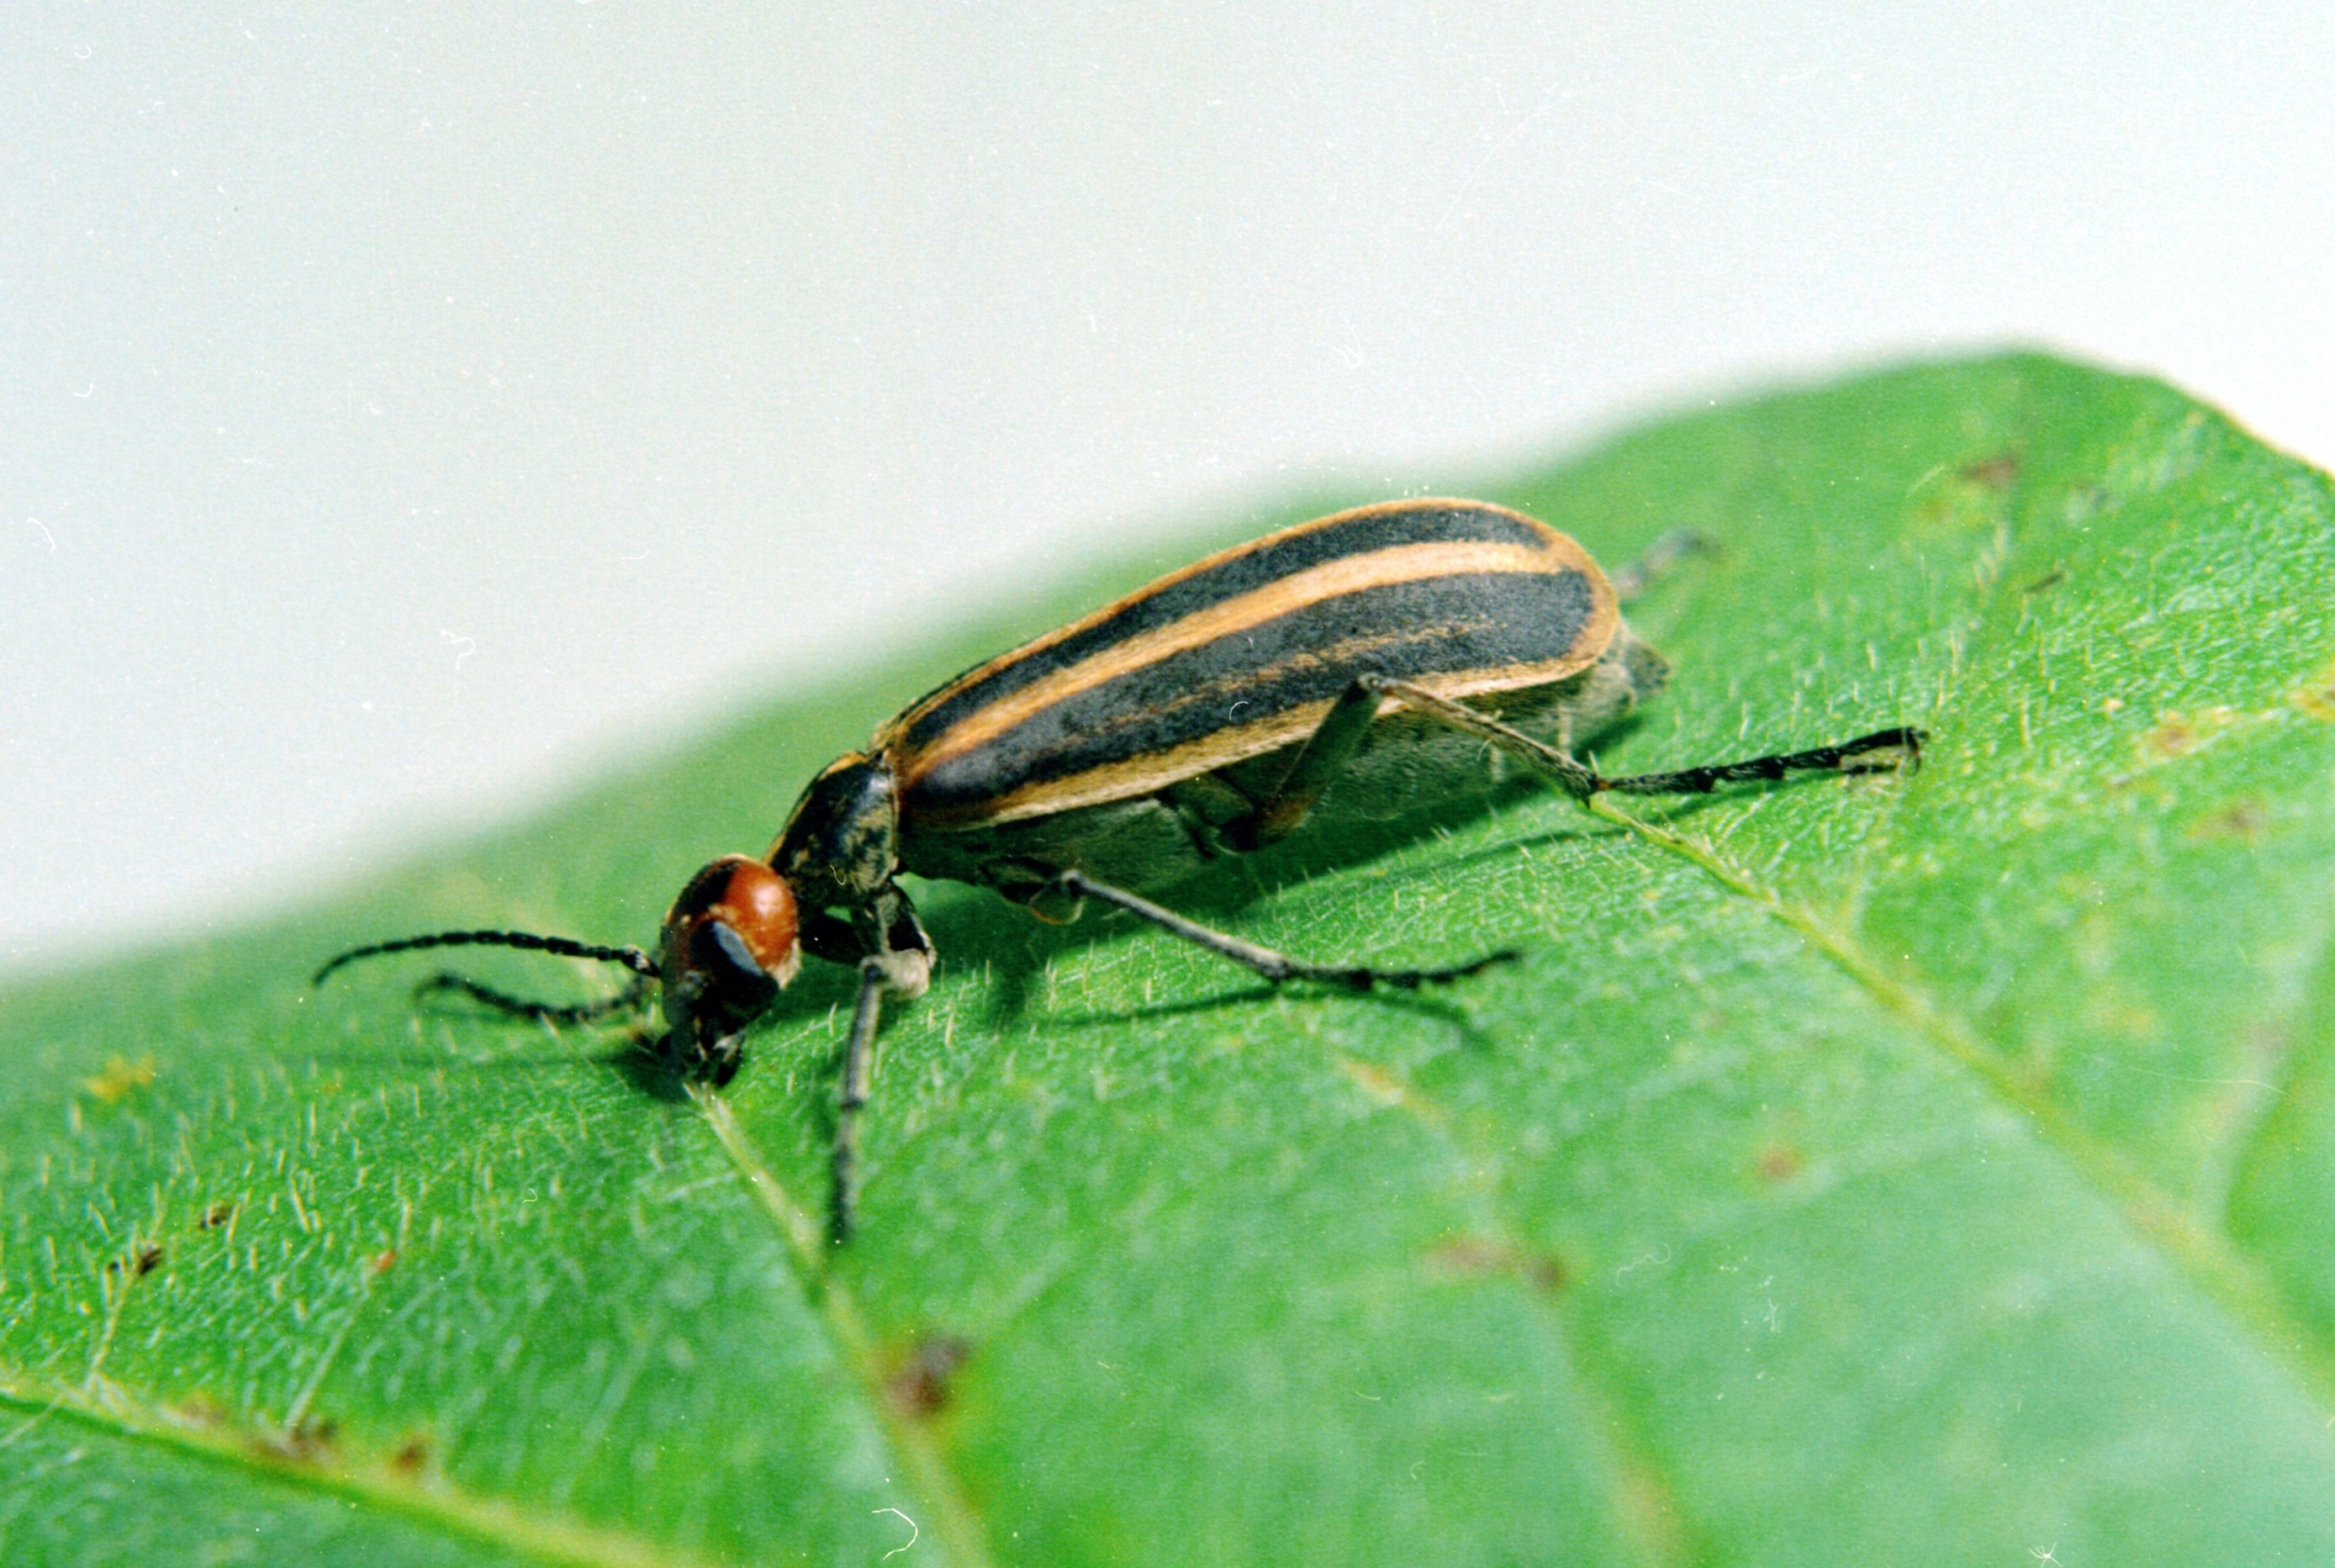 By Clemson University - USDA Cooperative Extension Slide Series, Bugwood.org (crop of File:Epicauta vittata on glycine max.jpg) [CC BY 3.0 (http://creativecommons.org/licenses/by/3.0)], via Wikimedia Commons